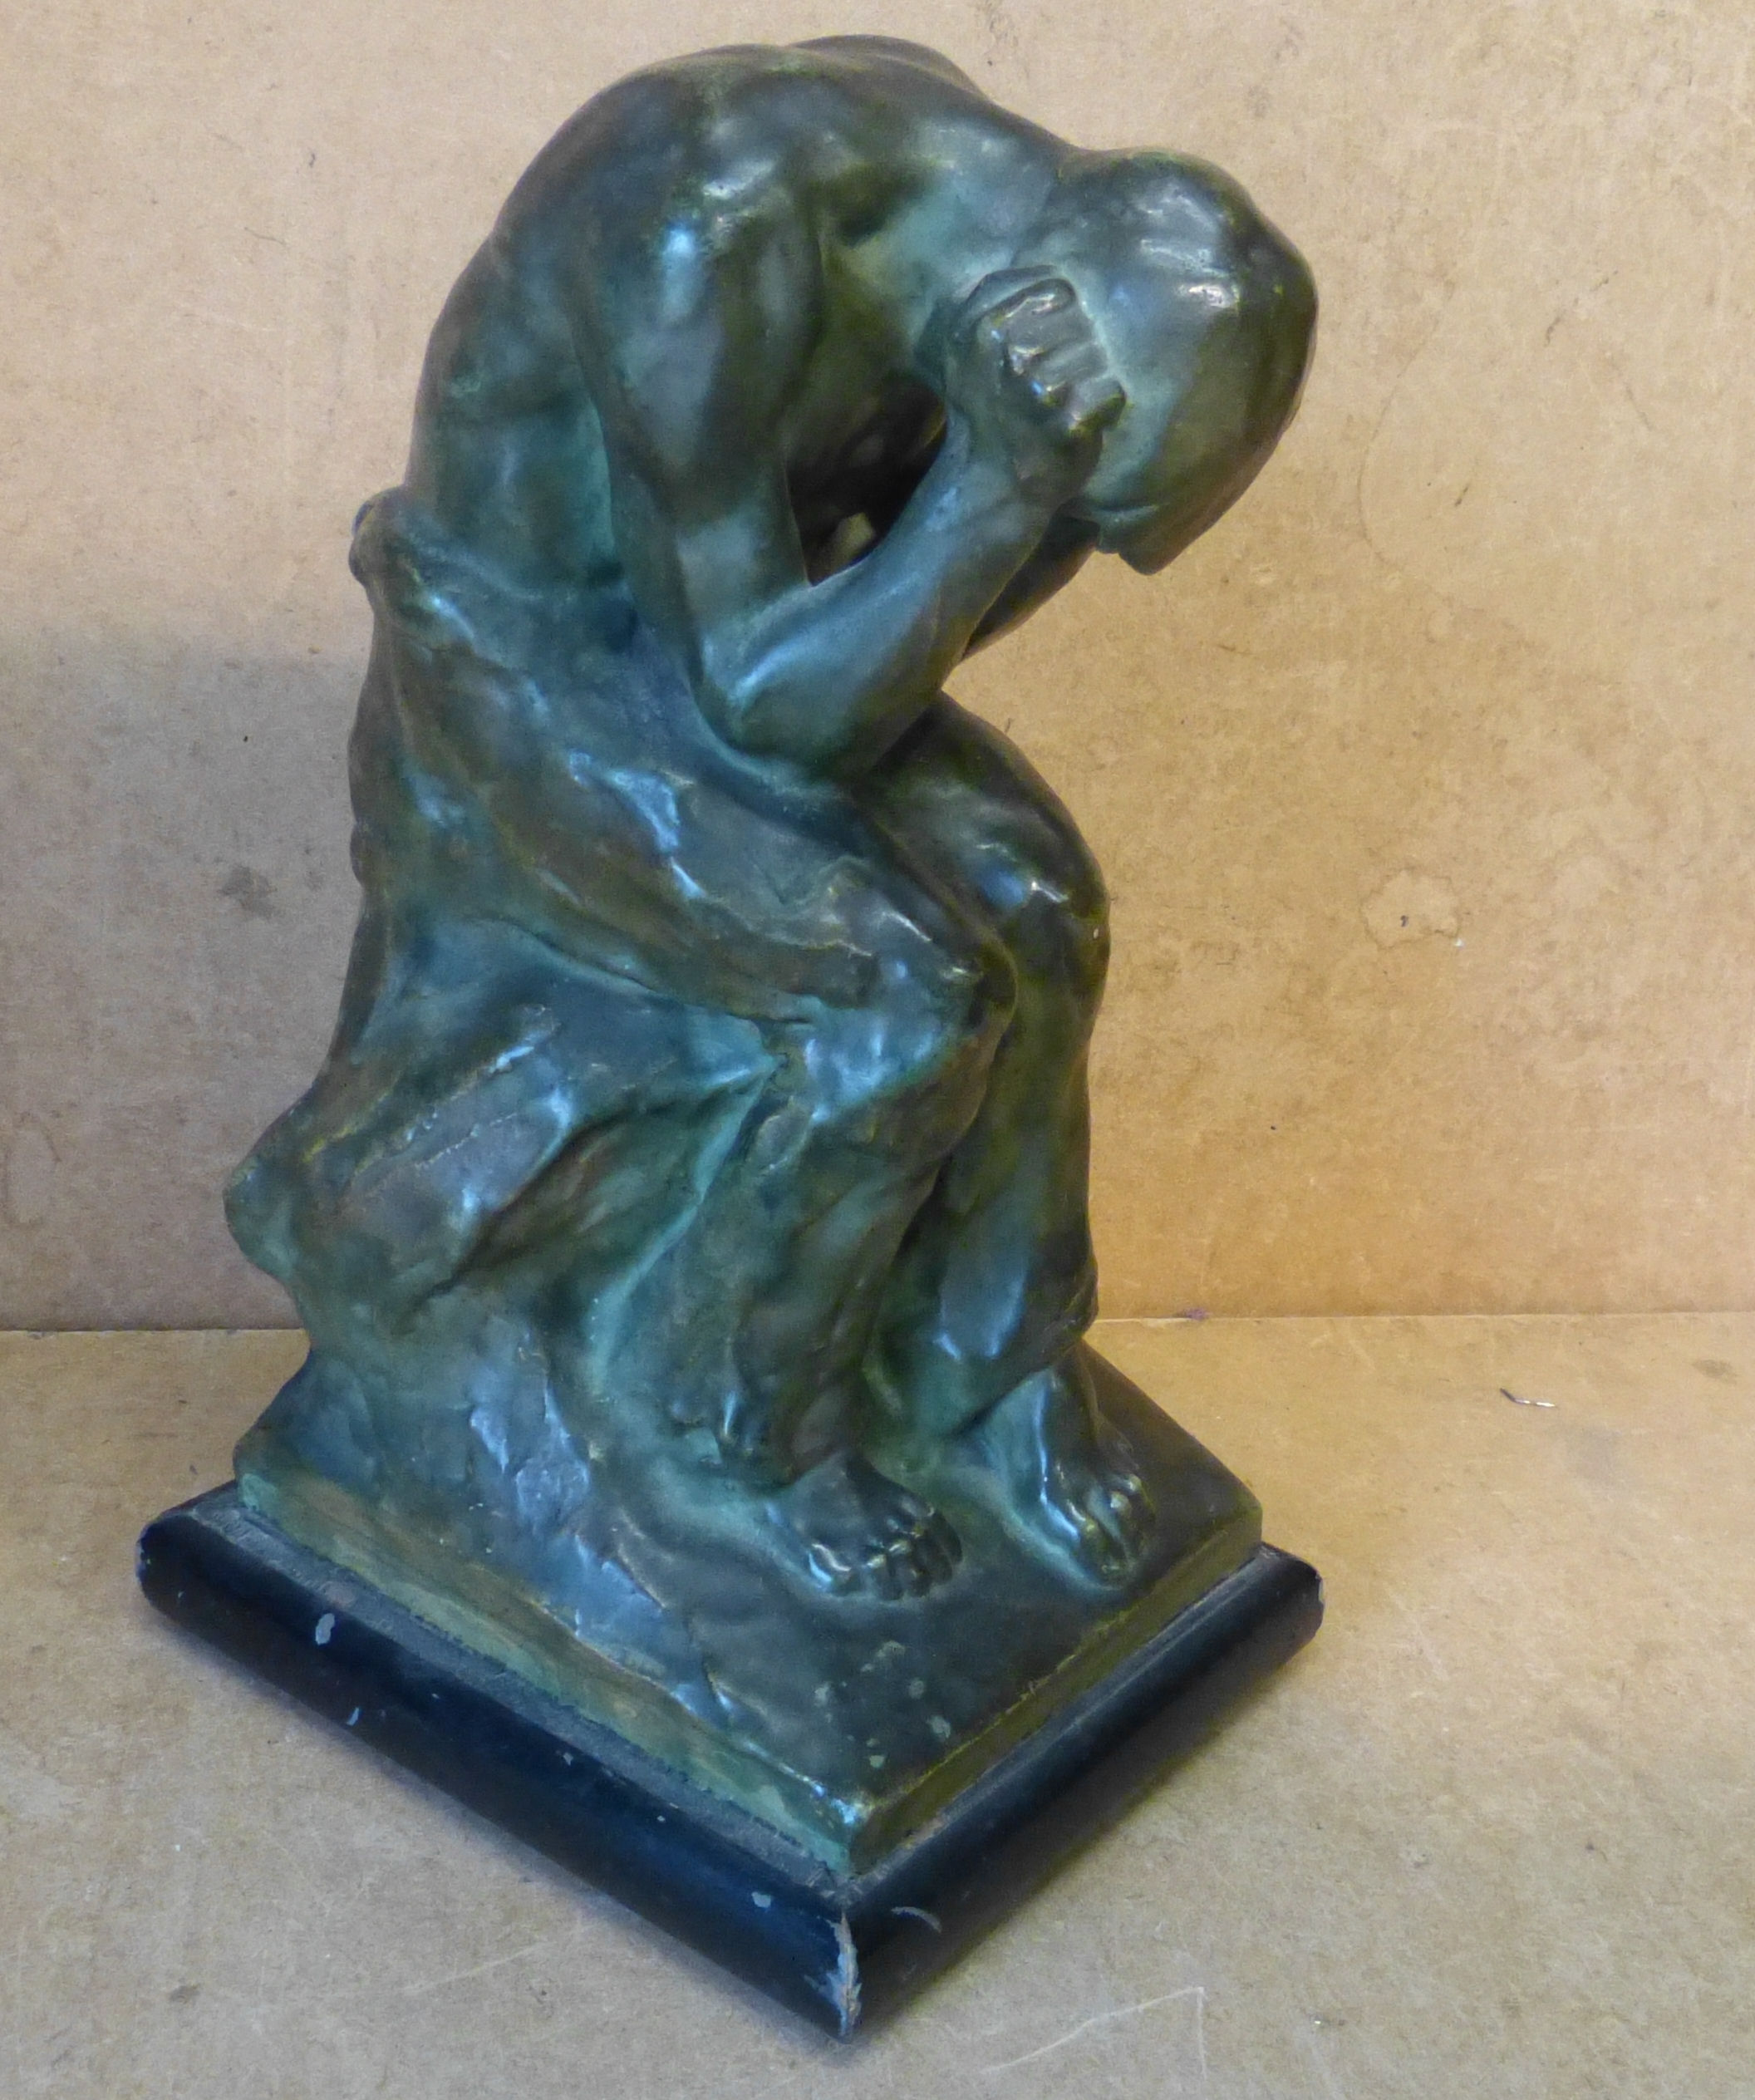 L Zorn Glazed Earthenware Figure of a seated gentleman holding head in hands on rectangular base